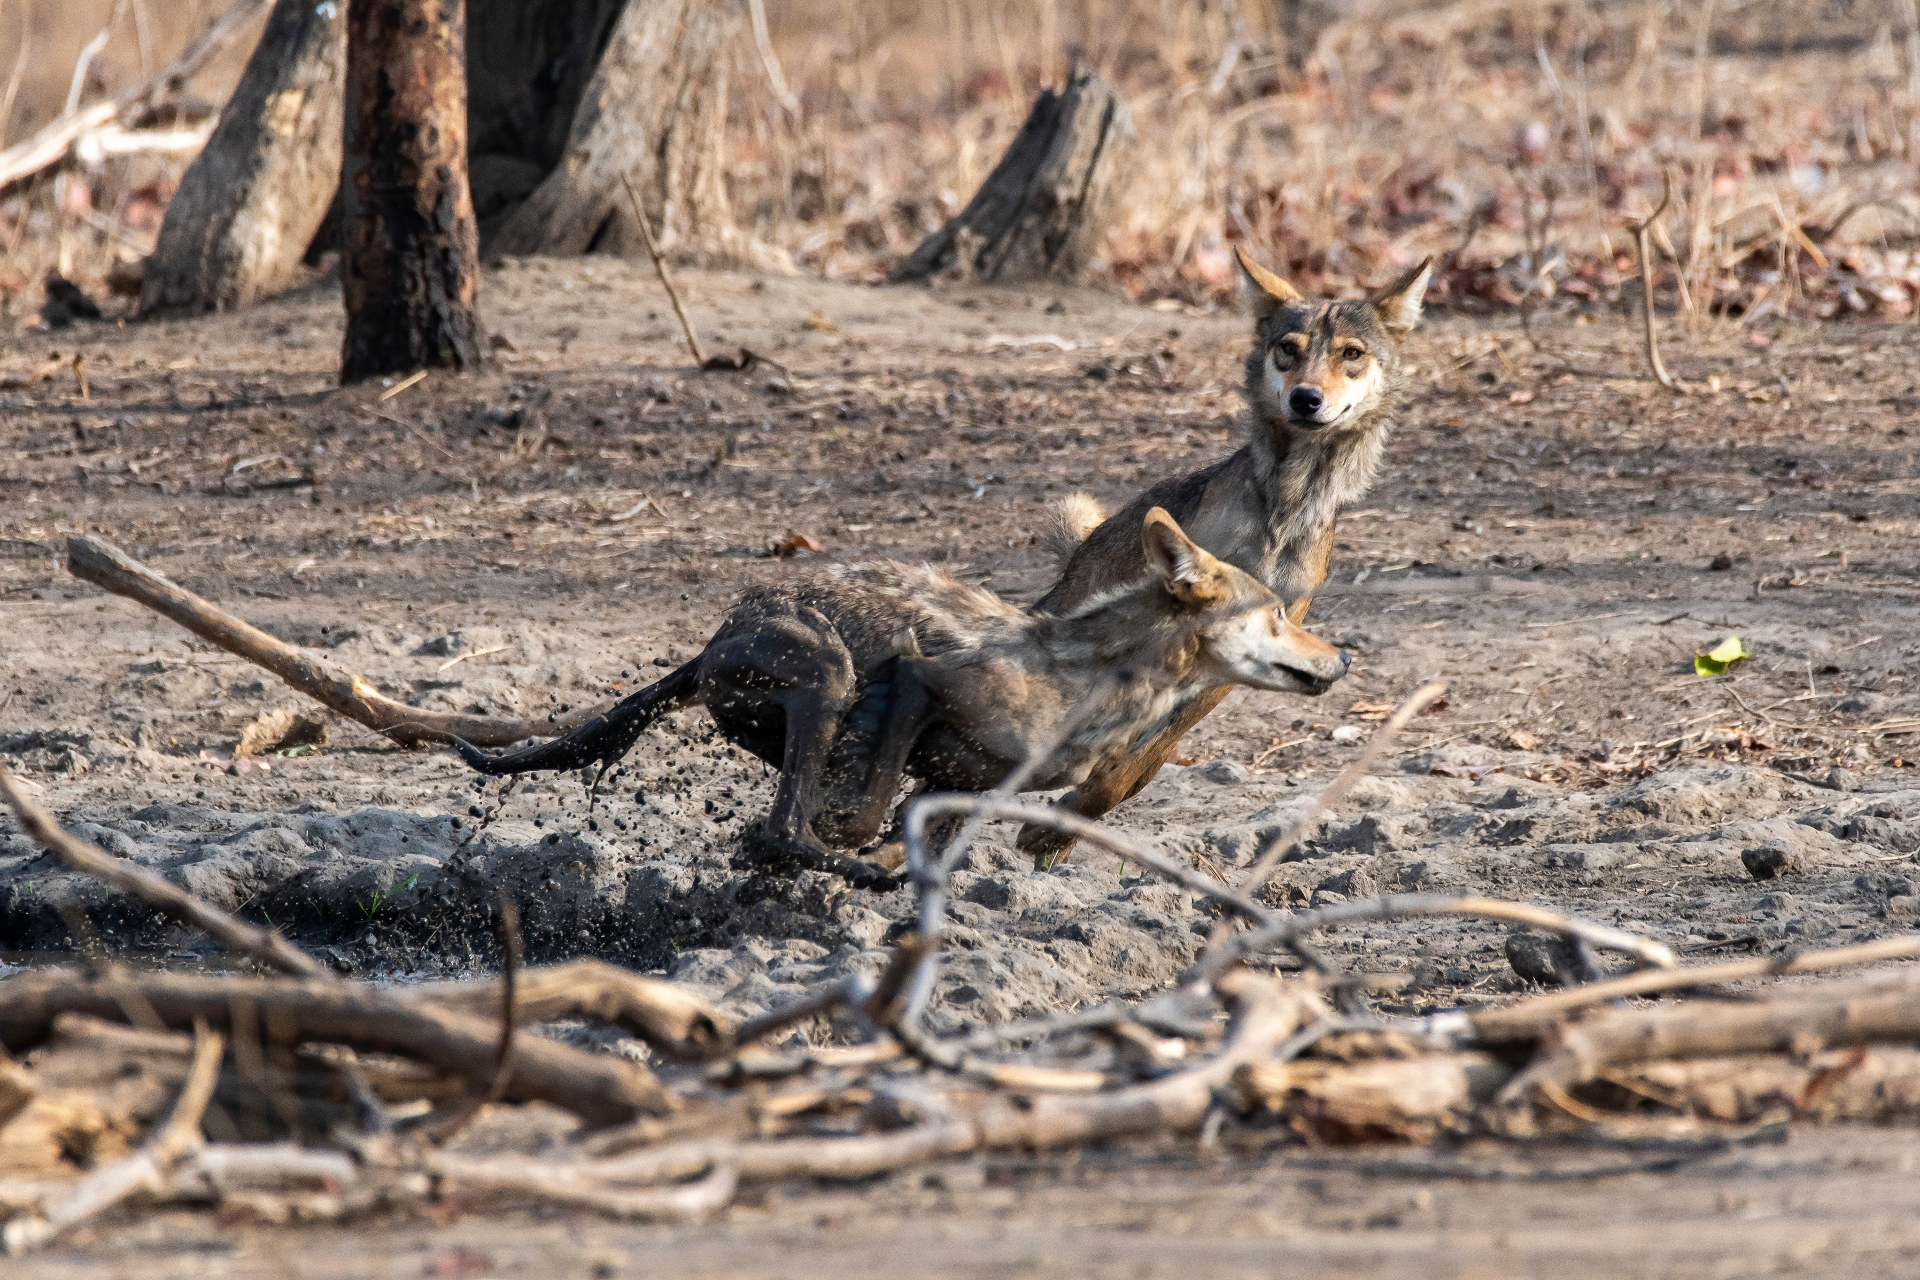 The Indian grey wolf has been persecuted for over two centuries. In British India, they were considered vermin, and killed extensively. Photo: Chaithanya Krishnan/Shutterstock